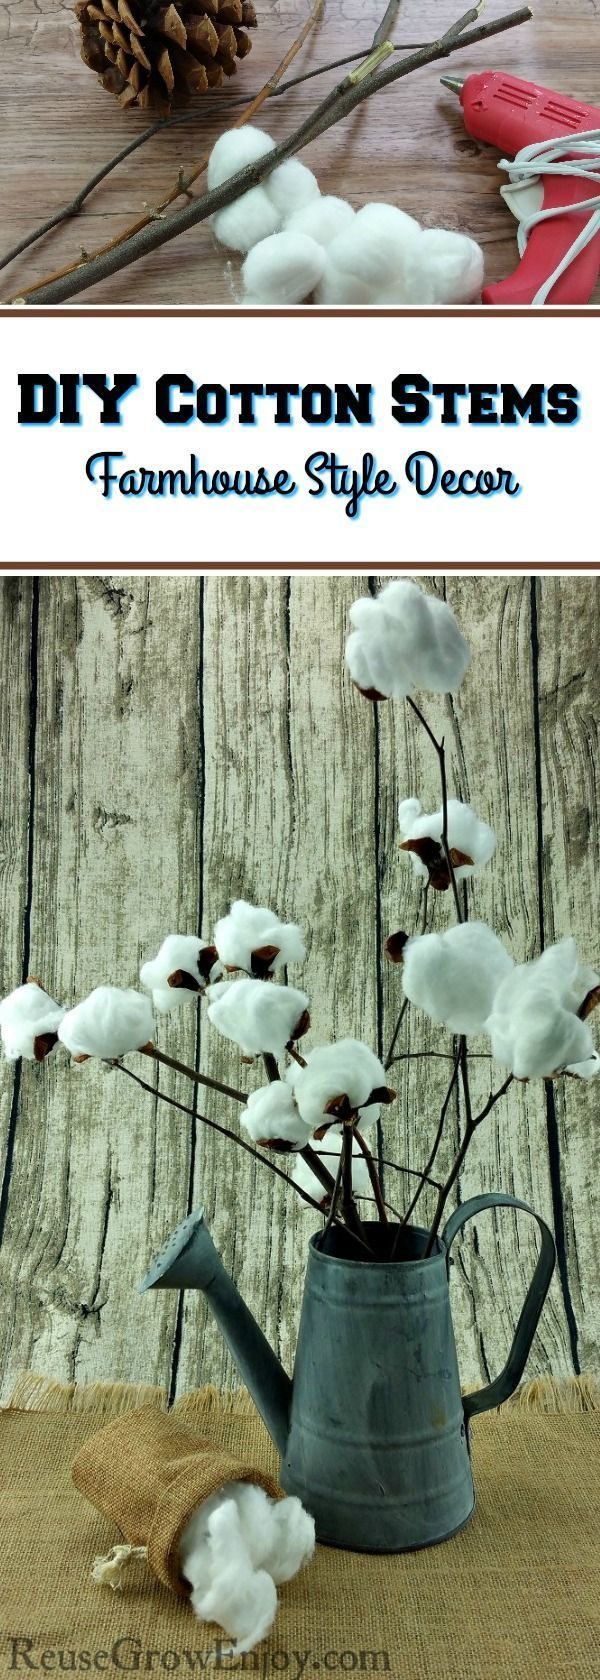 Did you know that making your own farmhouse style cotton stem is super easy and cheap? Click over and I will show you how to make this DIY cotton stem…